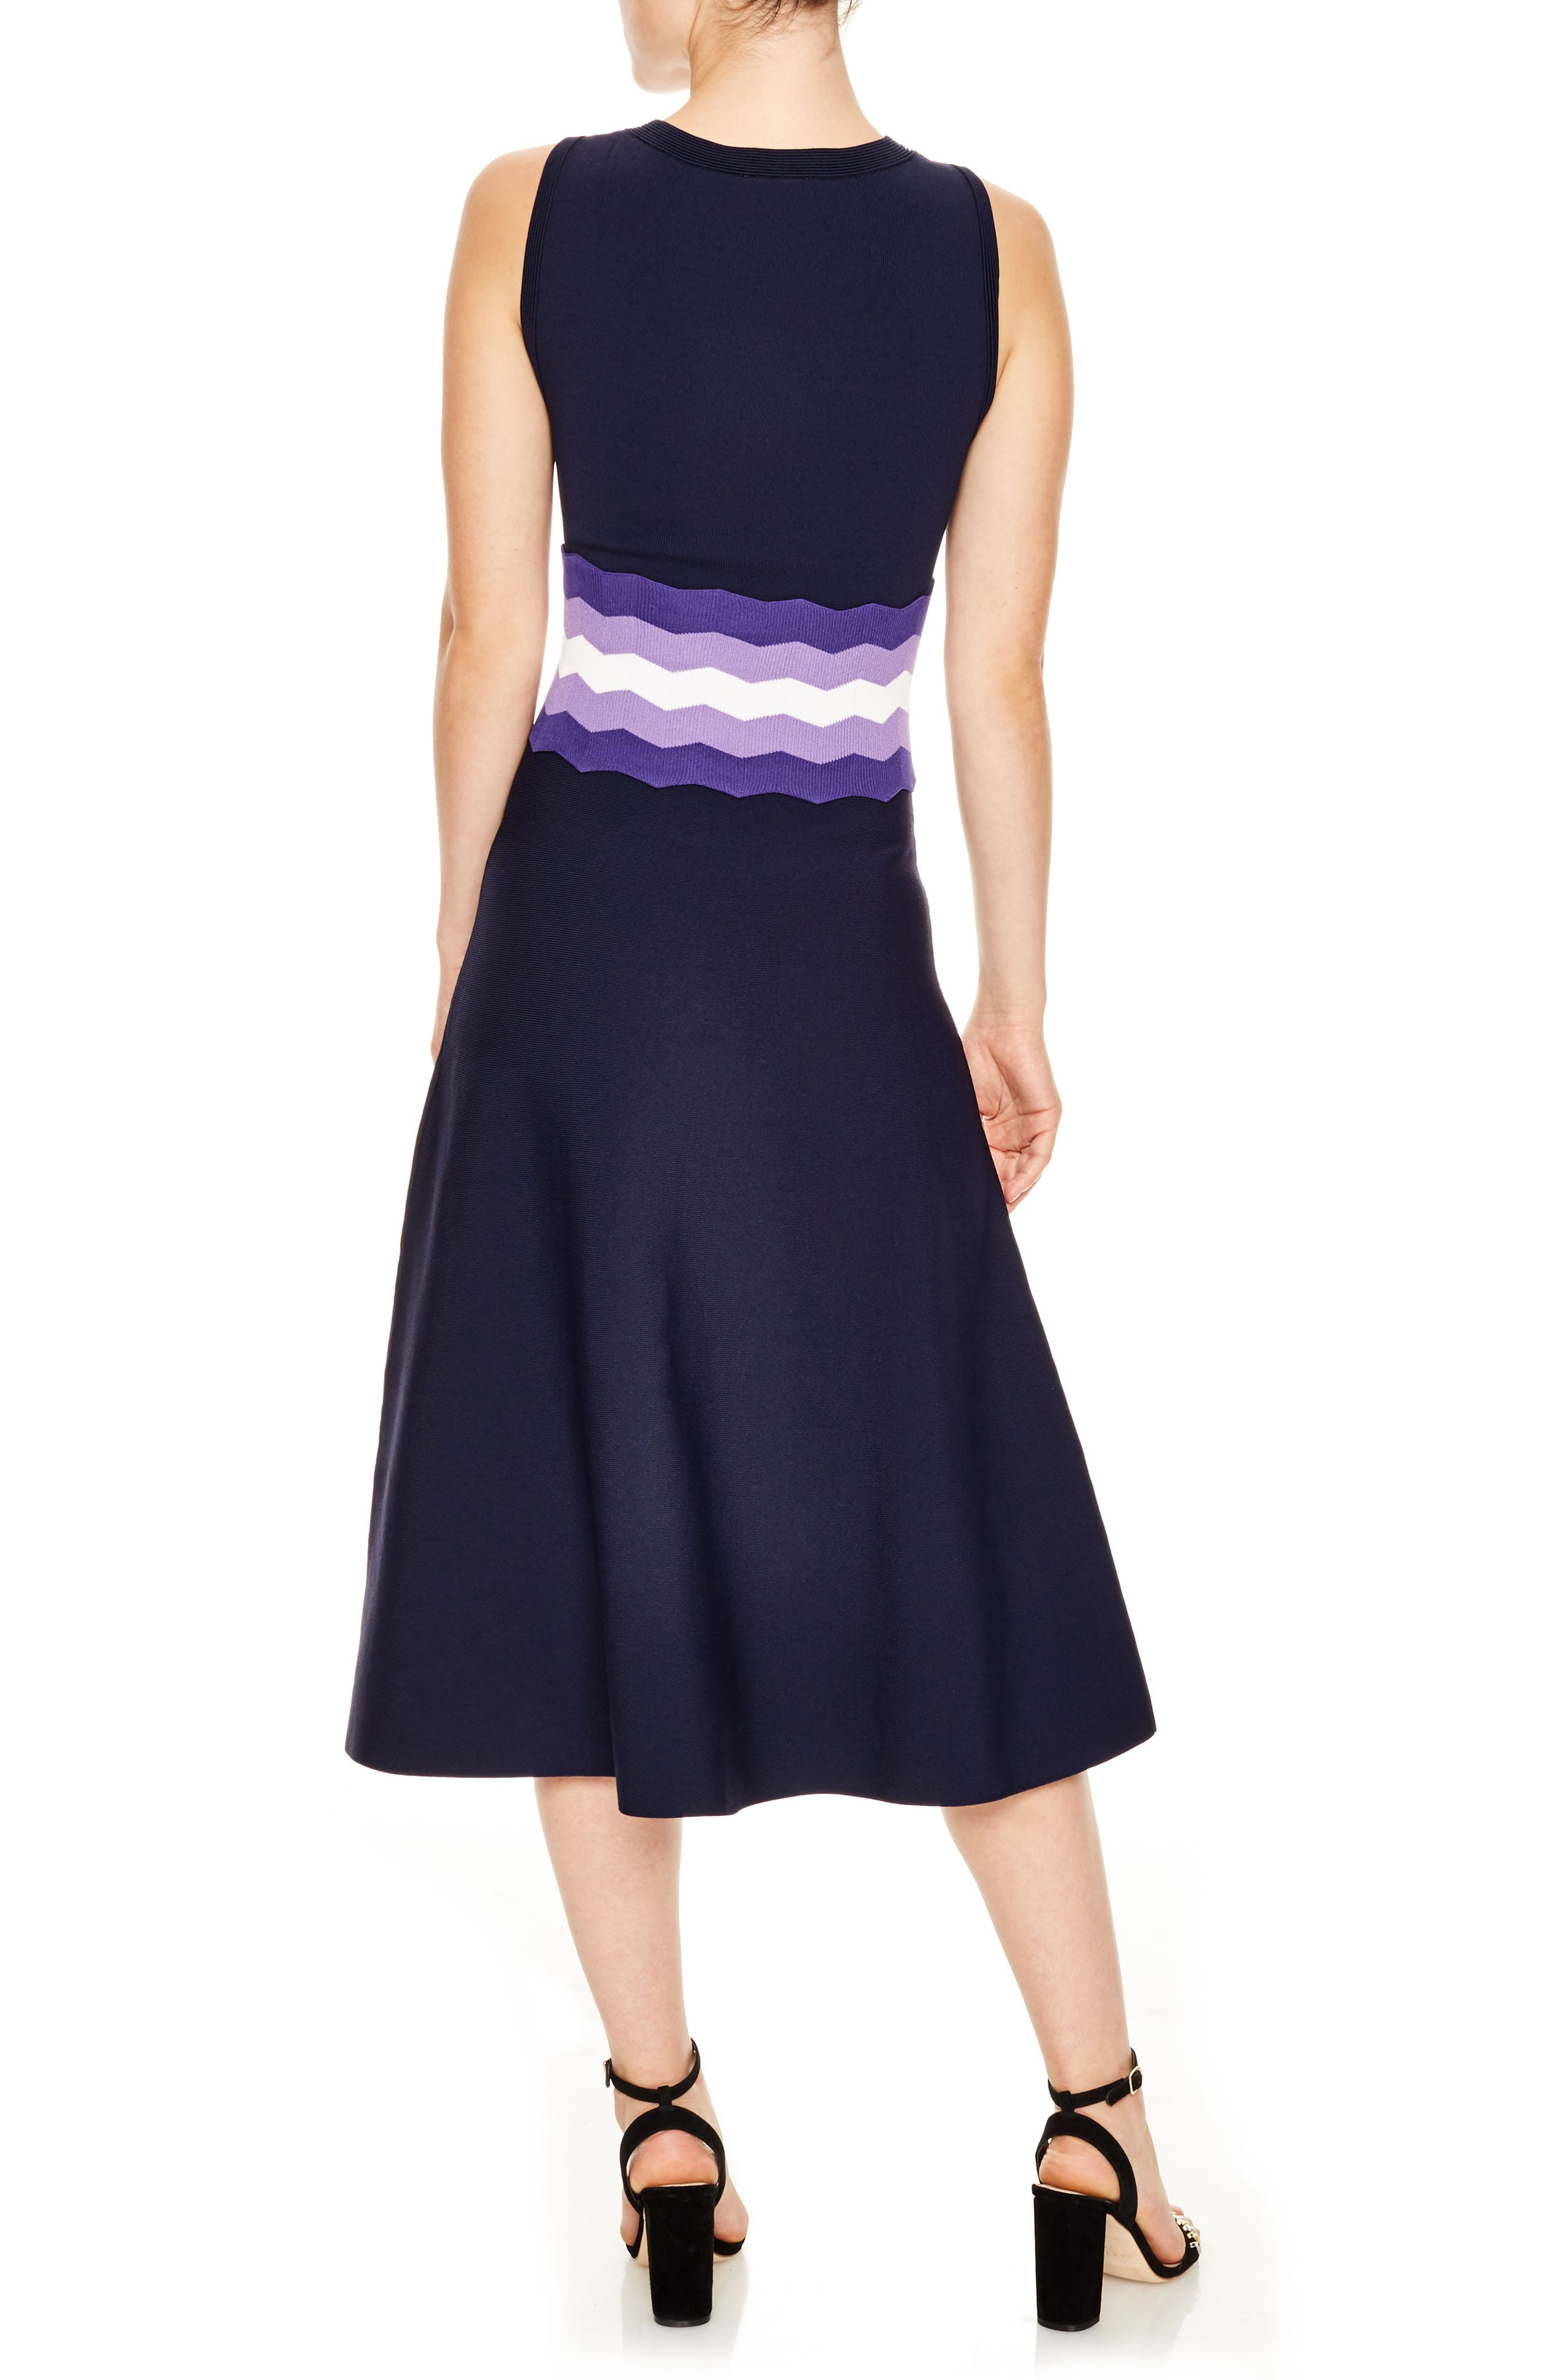 Belted Knit Midi Dress,                             Alternate thumbnail 2, color,                             Navy Blue